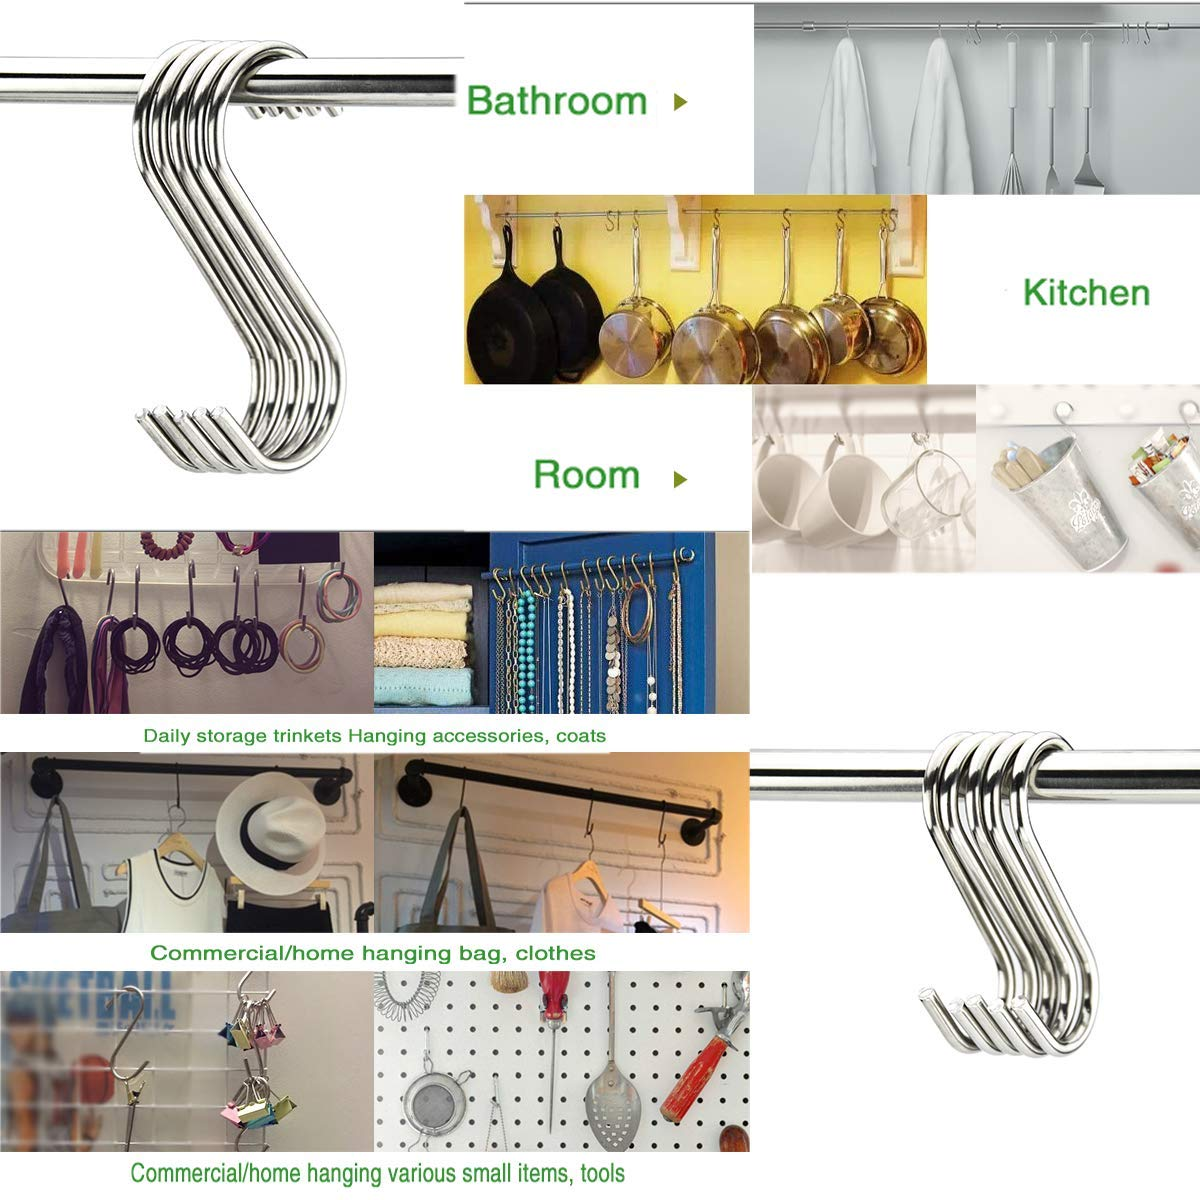 Garden Bathroom MOLYHUA Heavy Duty Stainless Steel S Hooks Rack Hangers for Hanging Kitchenware Pan Pots Utensils Clothes Bags Towels Plants 48 Pack S Shaped Hooks 3 Sizes